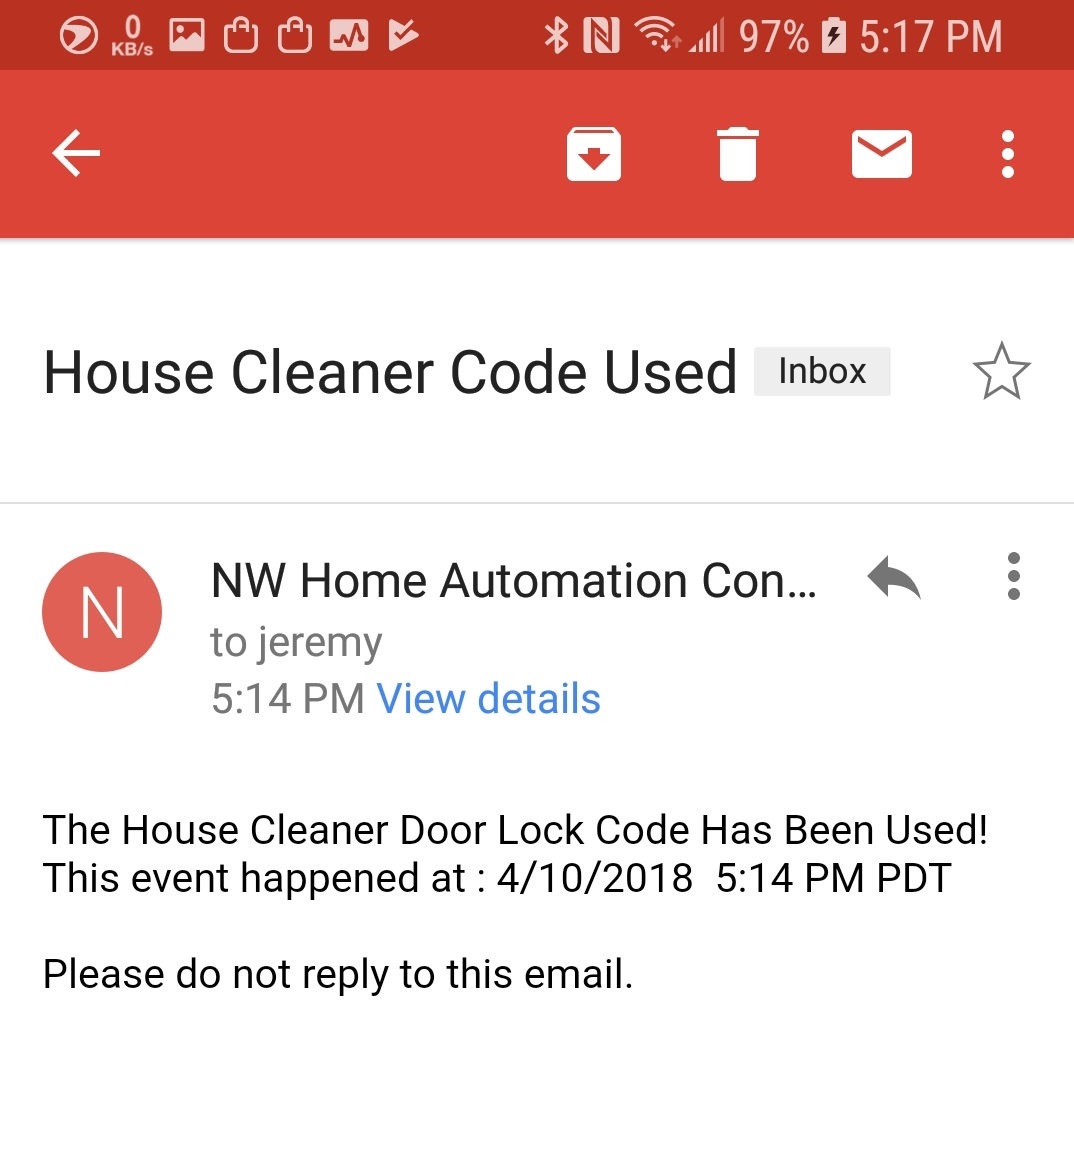 Email Alerts - Get notifications from your system for all the events you need to know about. Get an alert every time your house cleaner code or contractor code is used.  Find out when your door lock batteries are getting low. We can tailor alerts to your unique needs.